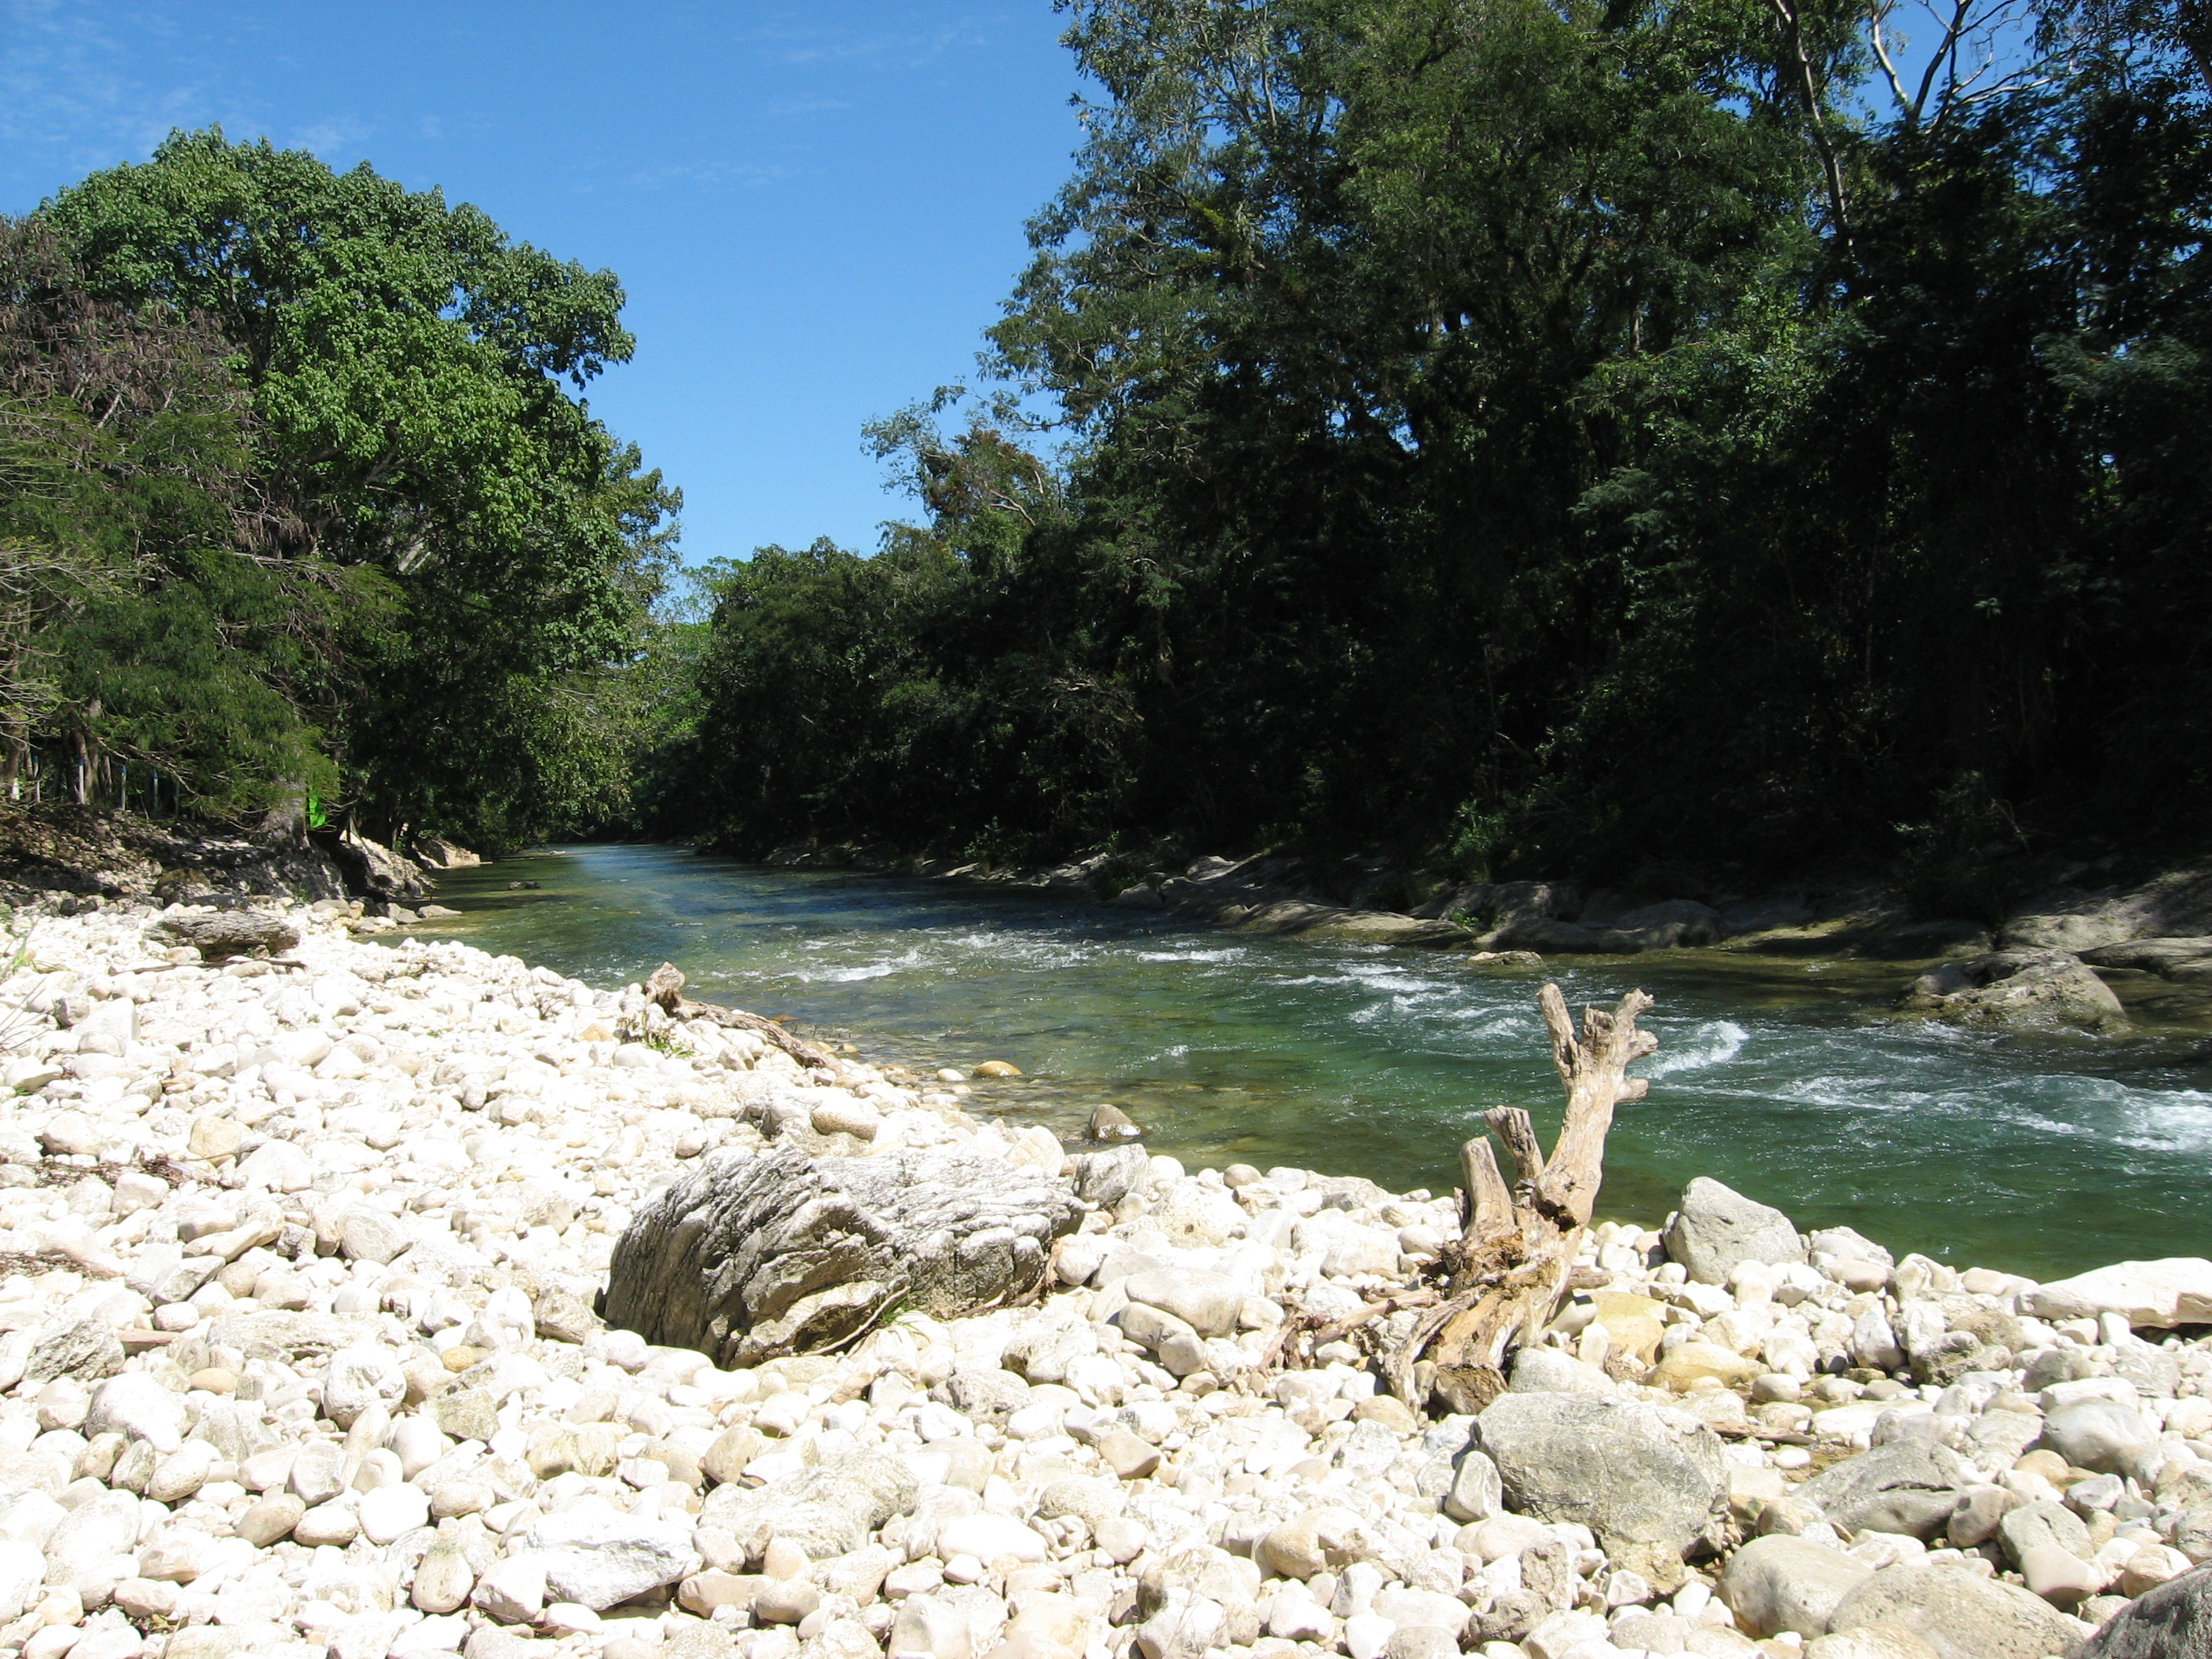 Chacamax River at the Nututun in Chiapas, Mexico